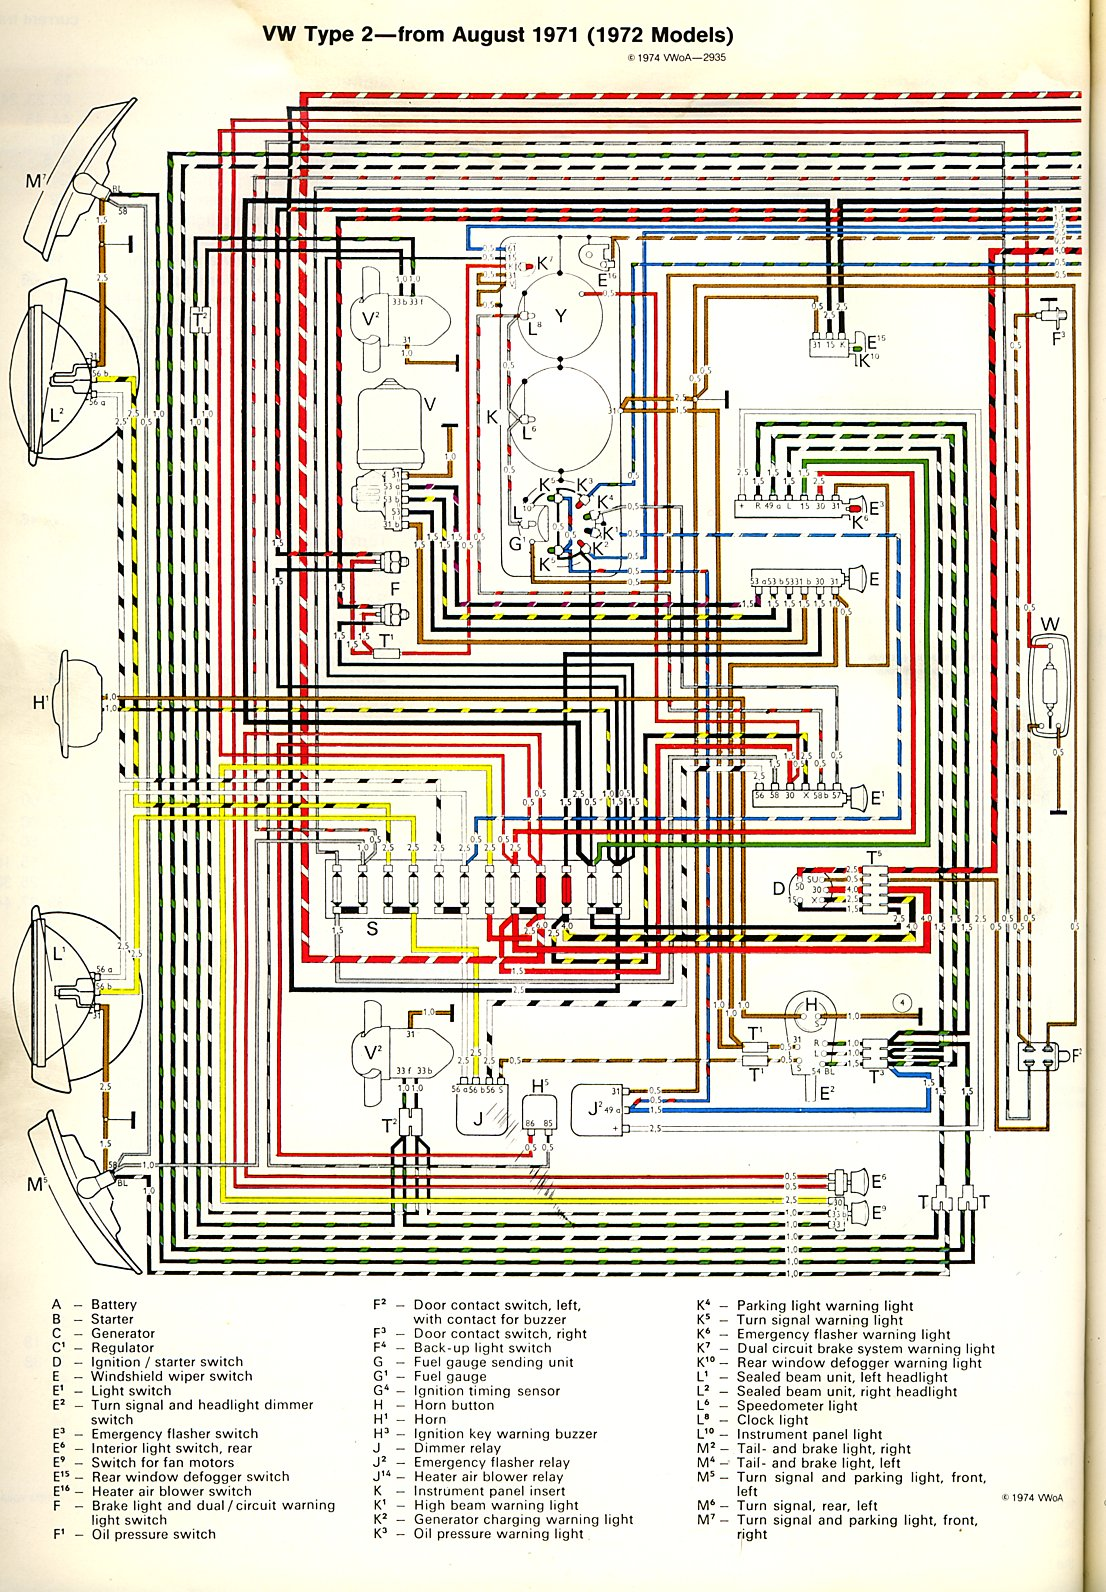 68 Barracuda Wiring Schematic Library 1965 Diagram Thesamba Com Type 2 Diagrams 1970